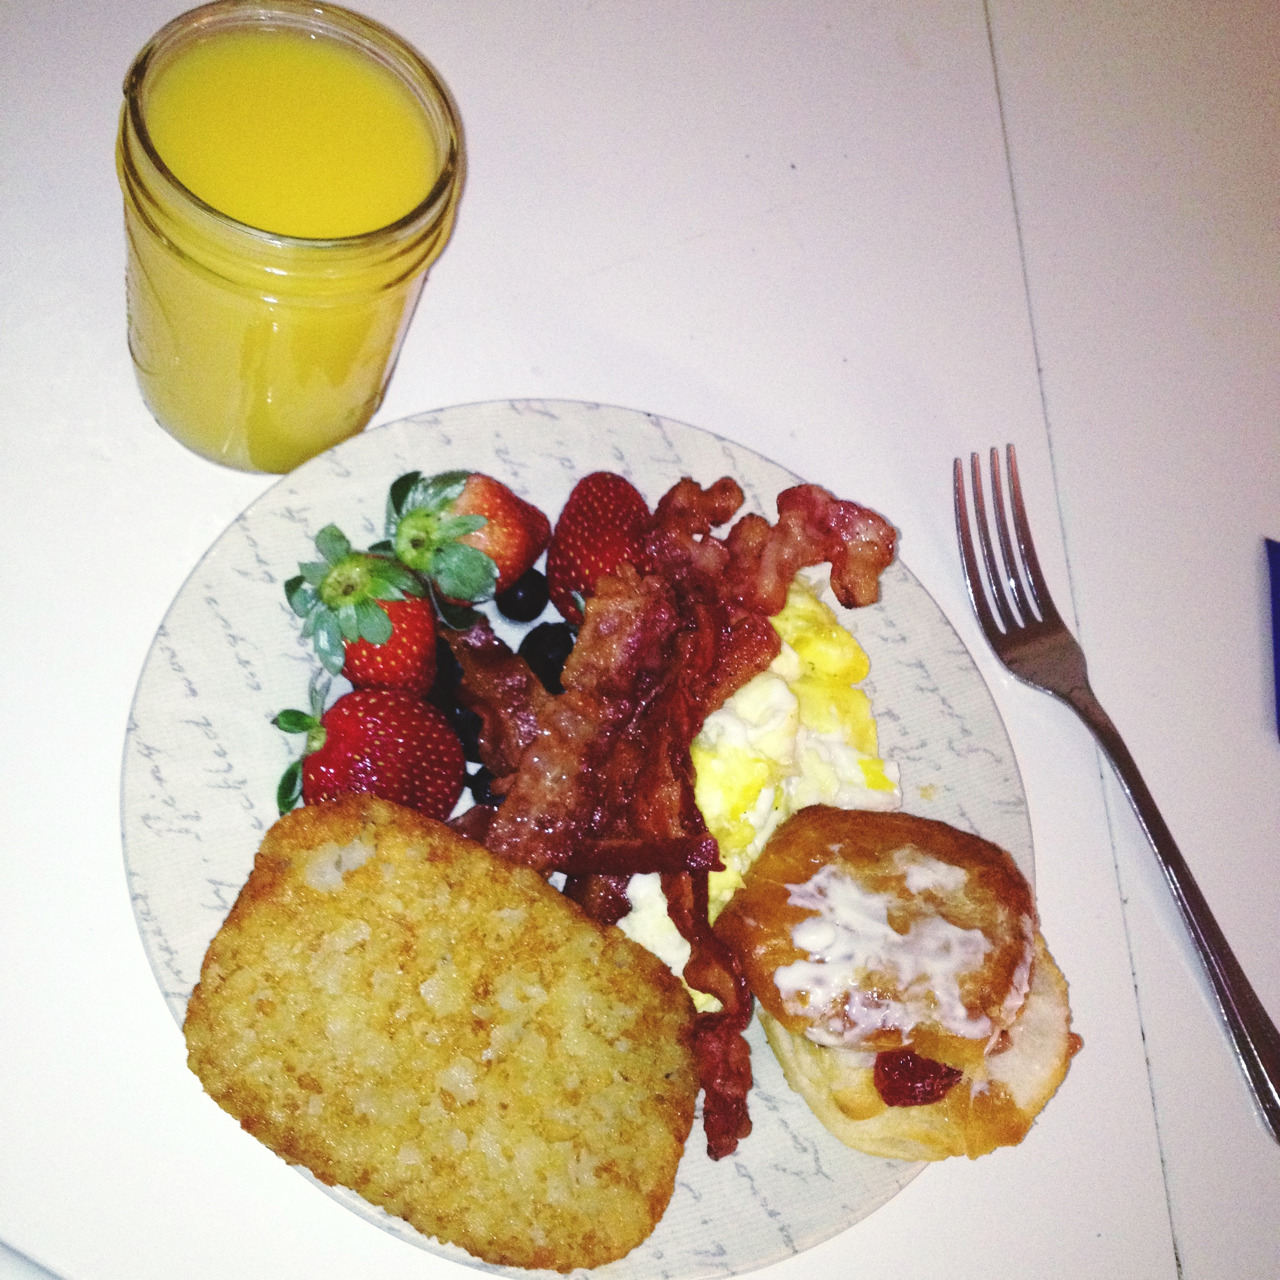 Breakfast for dinner Photo and food by Rubsta